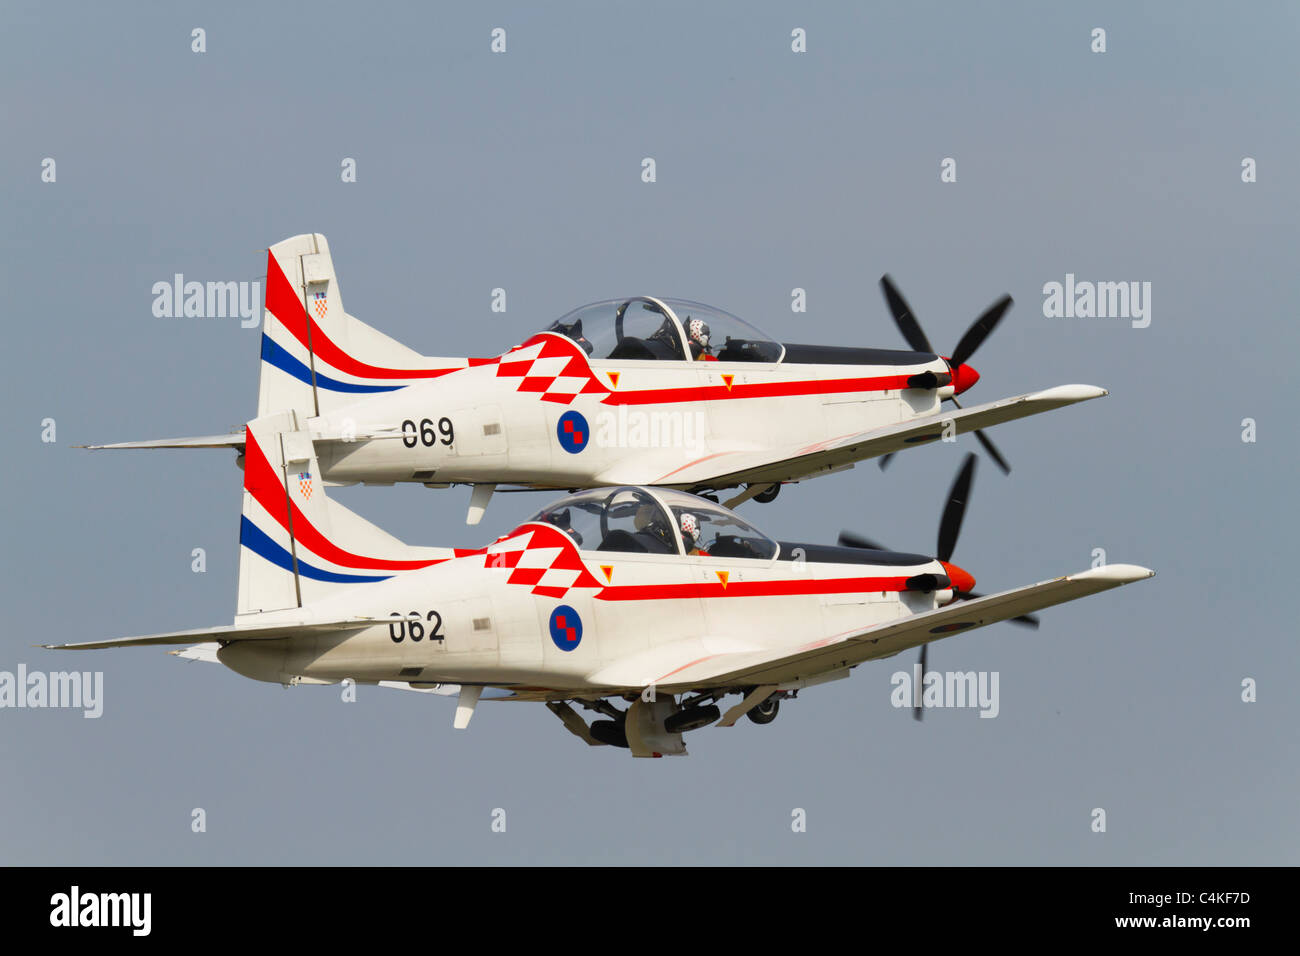 Pilatus PC-9 of 'Wings of storm' aerobatic group of Croatian air force - Stock Image